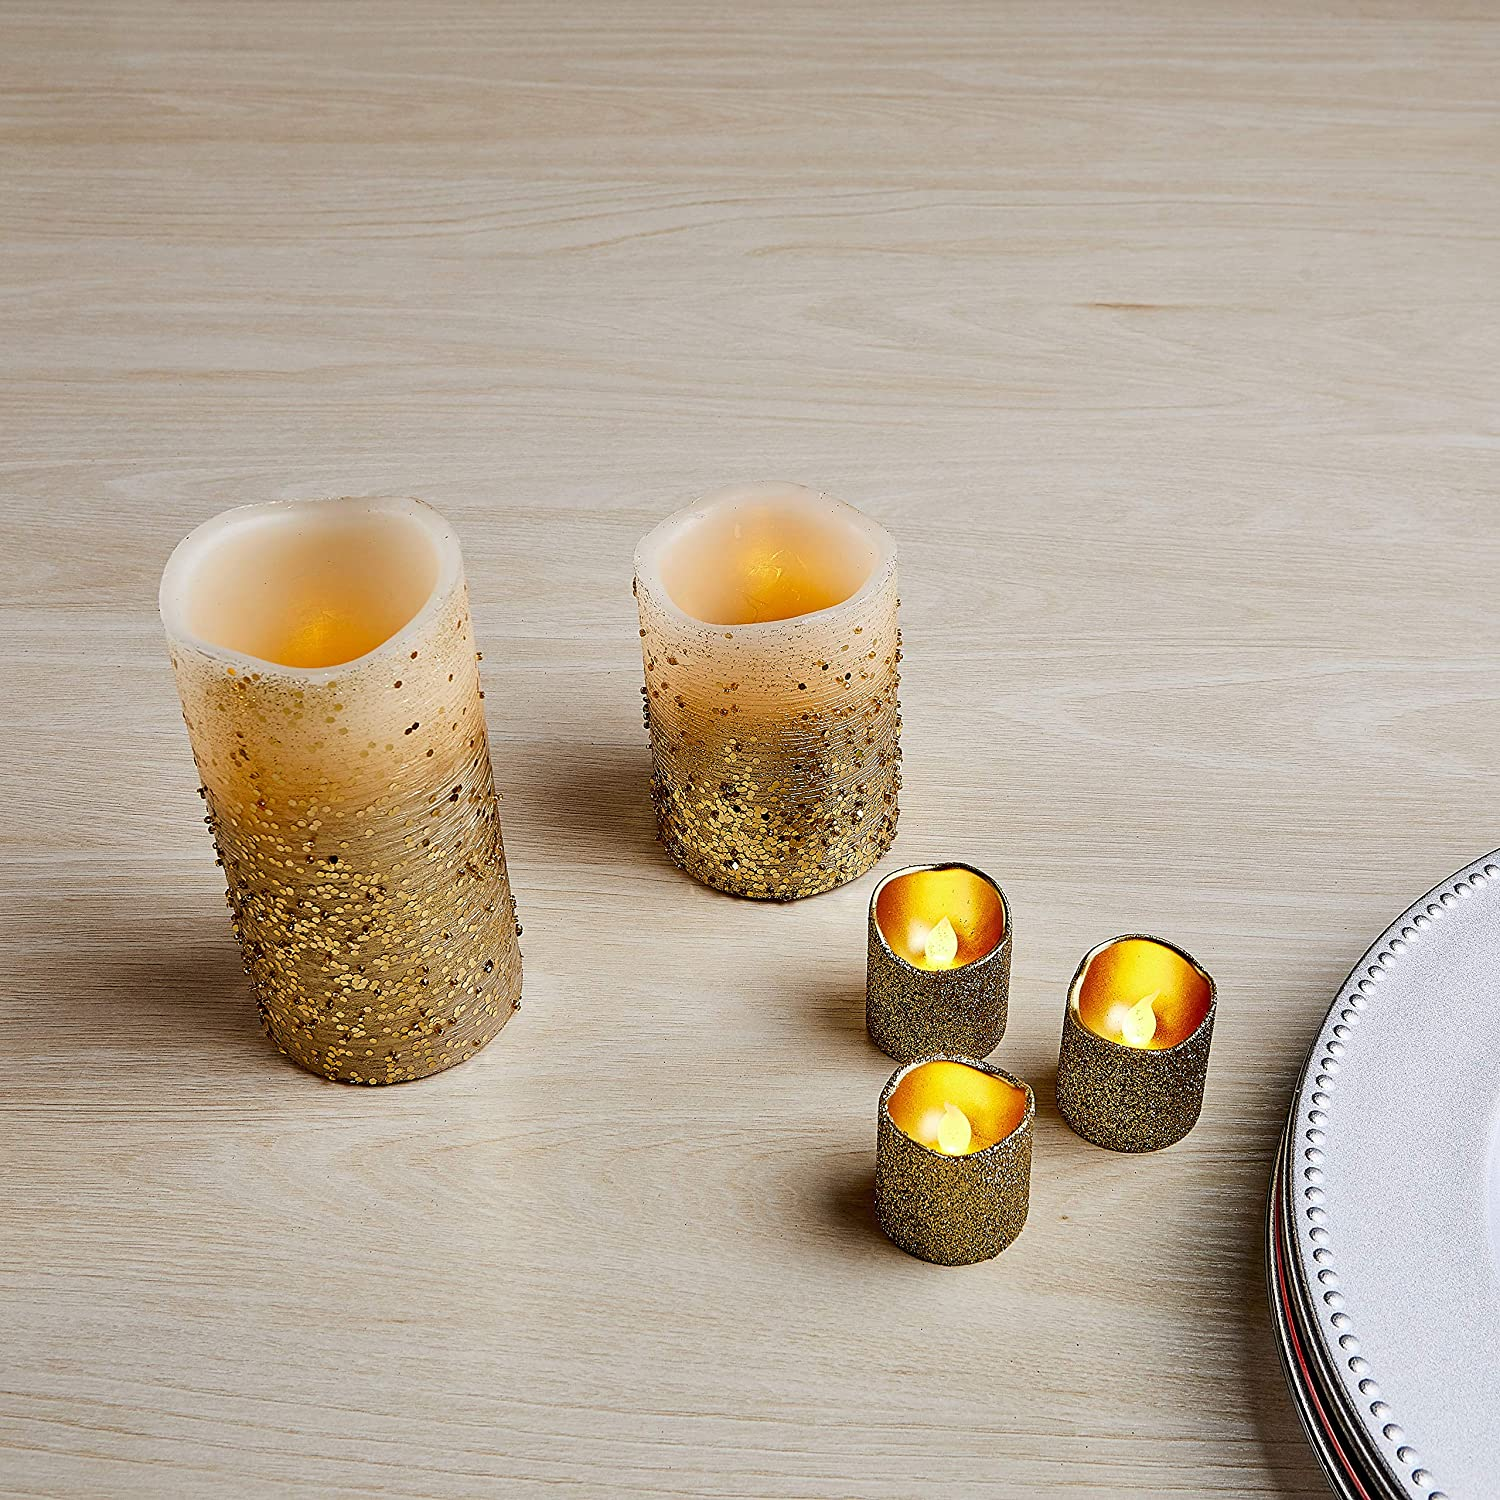 Real Wax Battery Operated Pillars and Votives LED Candles with Flickering Flame and Timer Featured Furora LIGHTING LED Flameless Candles with Remote Control Gold Glittery Set of 8